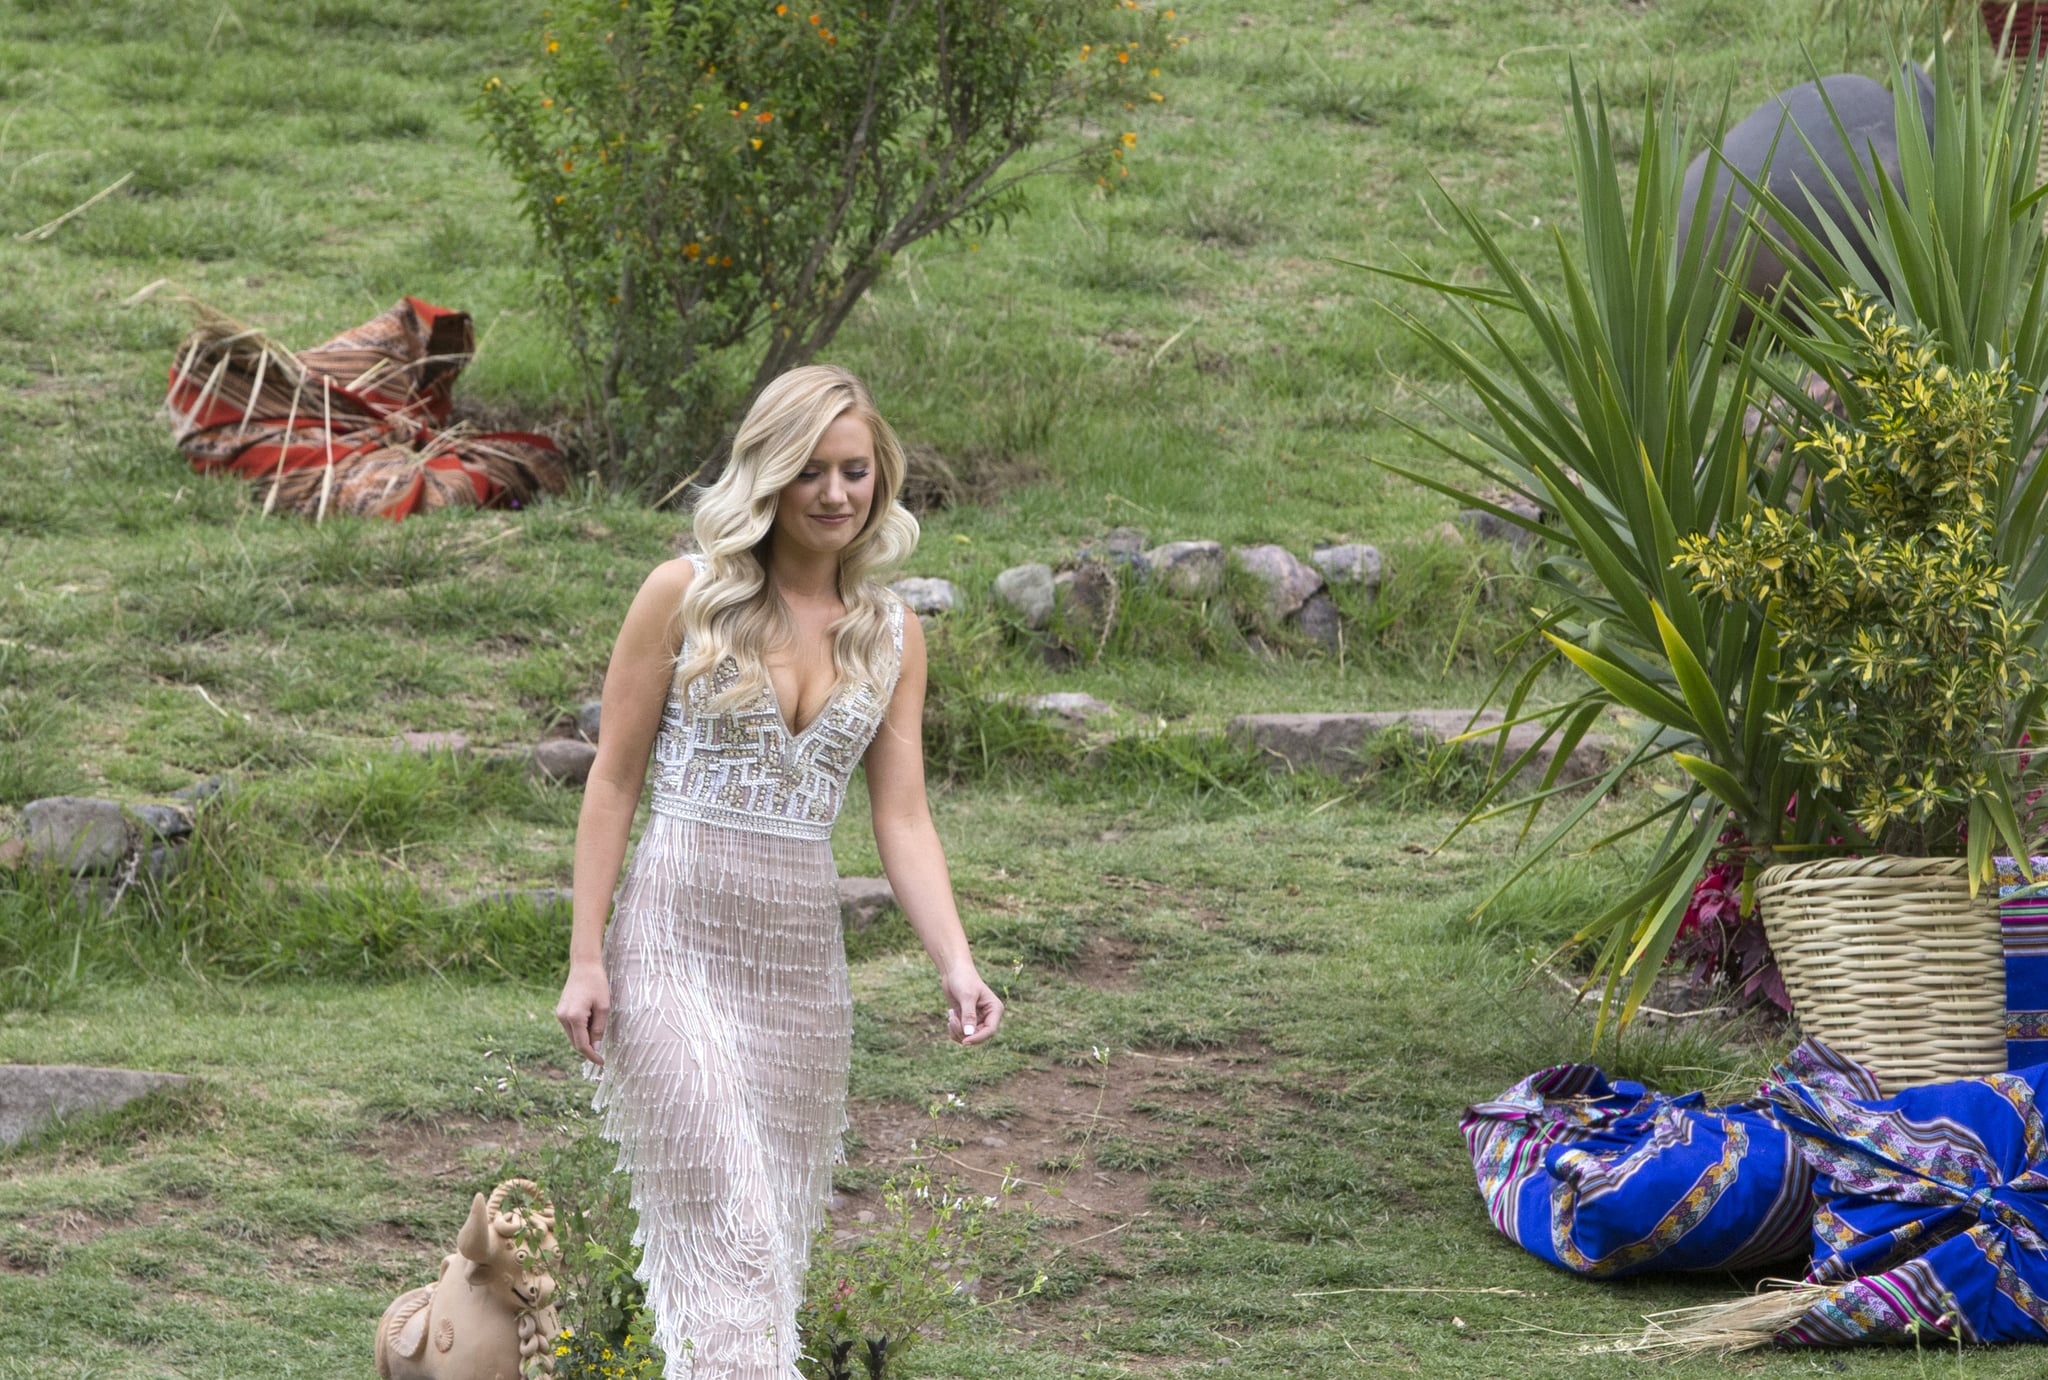 THE BACHELOR - Episode 2210 - The compelling live three-hour television event will begin with America watching along with the studio audience as Arie Luyendyk Jr.s journey to find love comes to its astonishing conclusion. The Bachelor prepares to make one of the most difficult choices of his life, having narrowed down the field to two women with whom he is madly in love  Becca K. and Lauren B. - and told both of them that he loves them. Who does Arie, after much soul-searching, see as his future wife? Find out on the season finale of The Bachelor, MONDAY, MARCH 5 (8:00-11:00 p.m. EST), on The ABC Television Network. (ABC/Paul Hebert)LAUREN B.